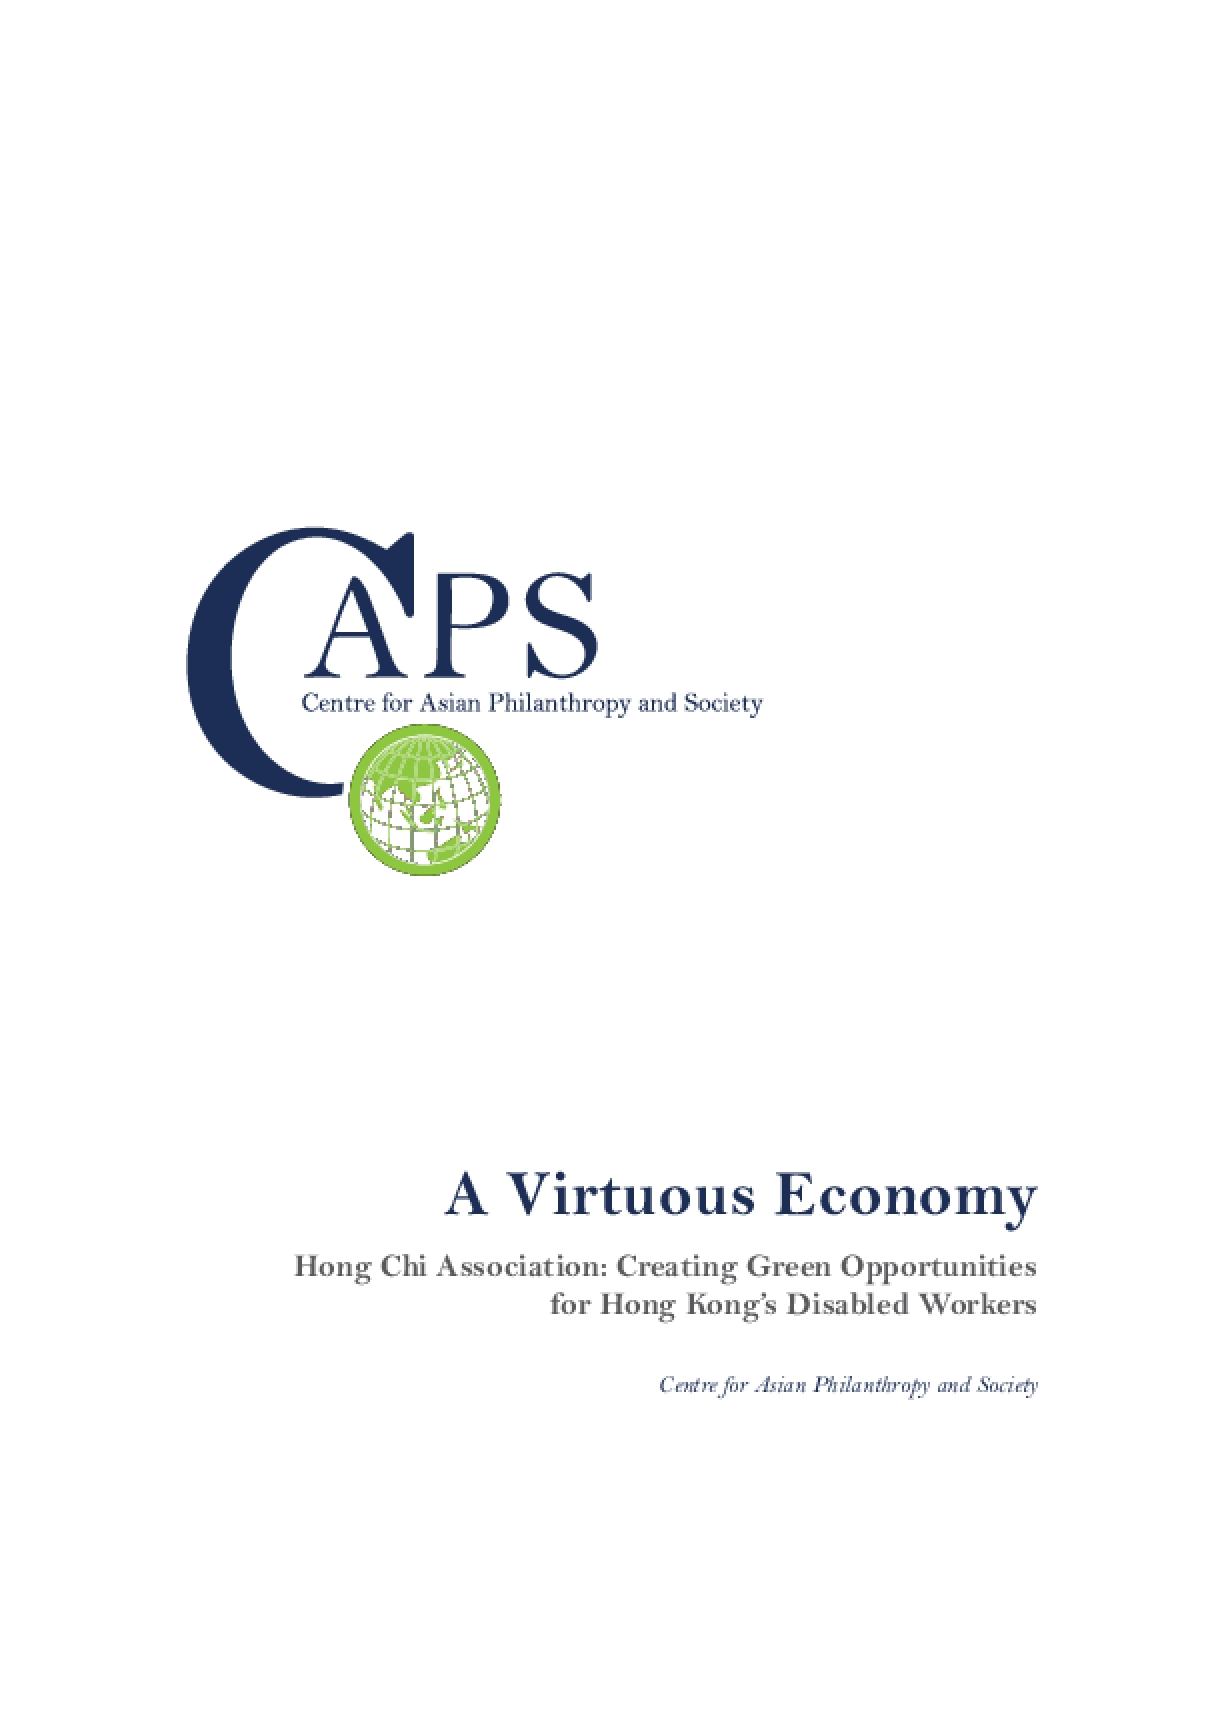 A Virtuous Economy: Hong Chi Association - Creating Green Opportunities for Hong Kong's Disabled Workers